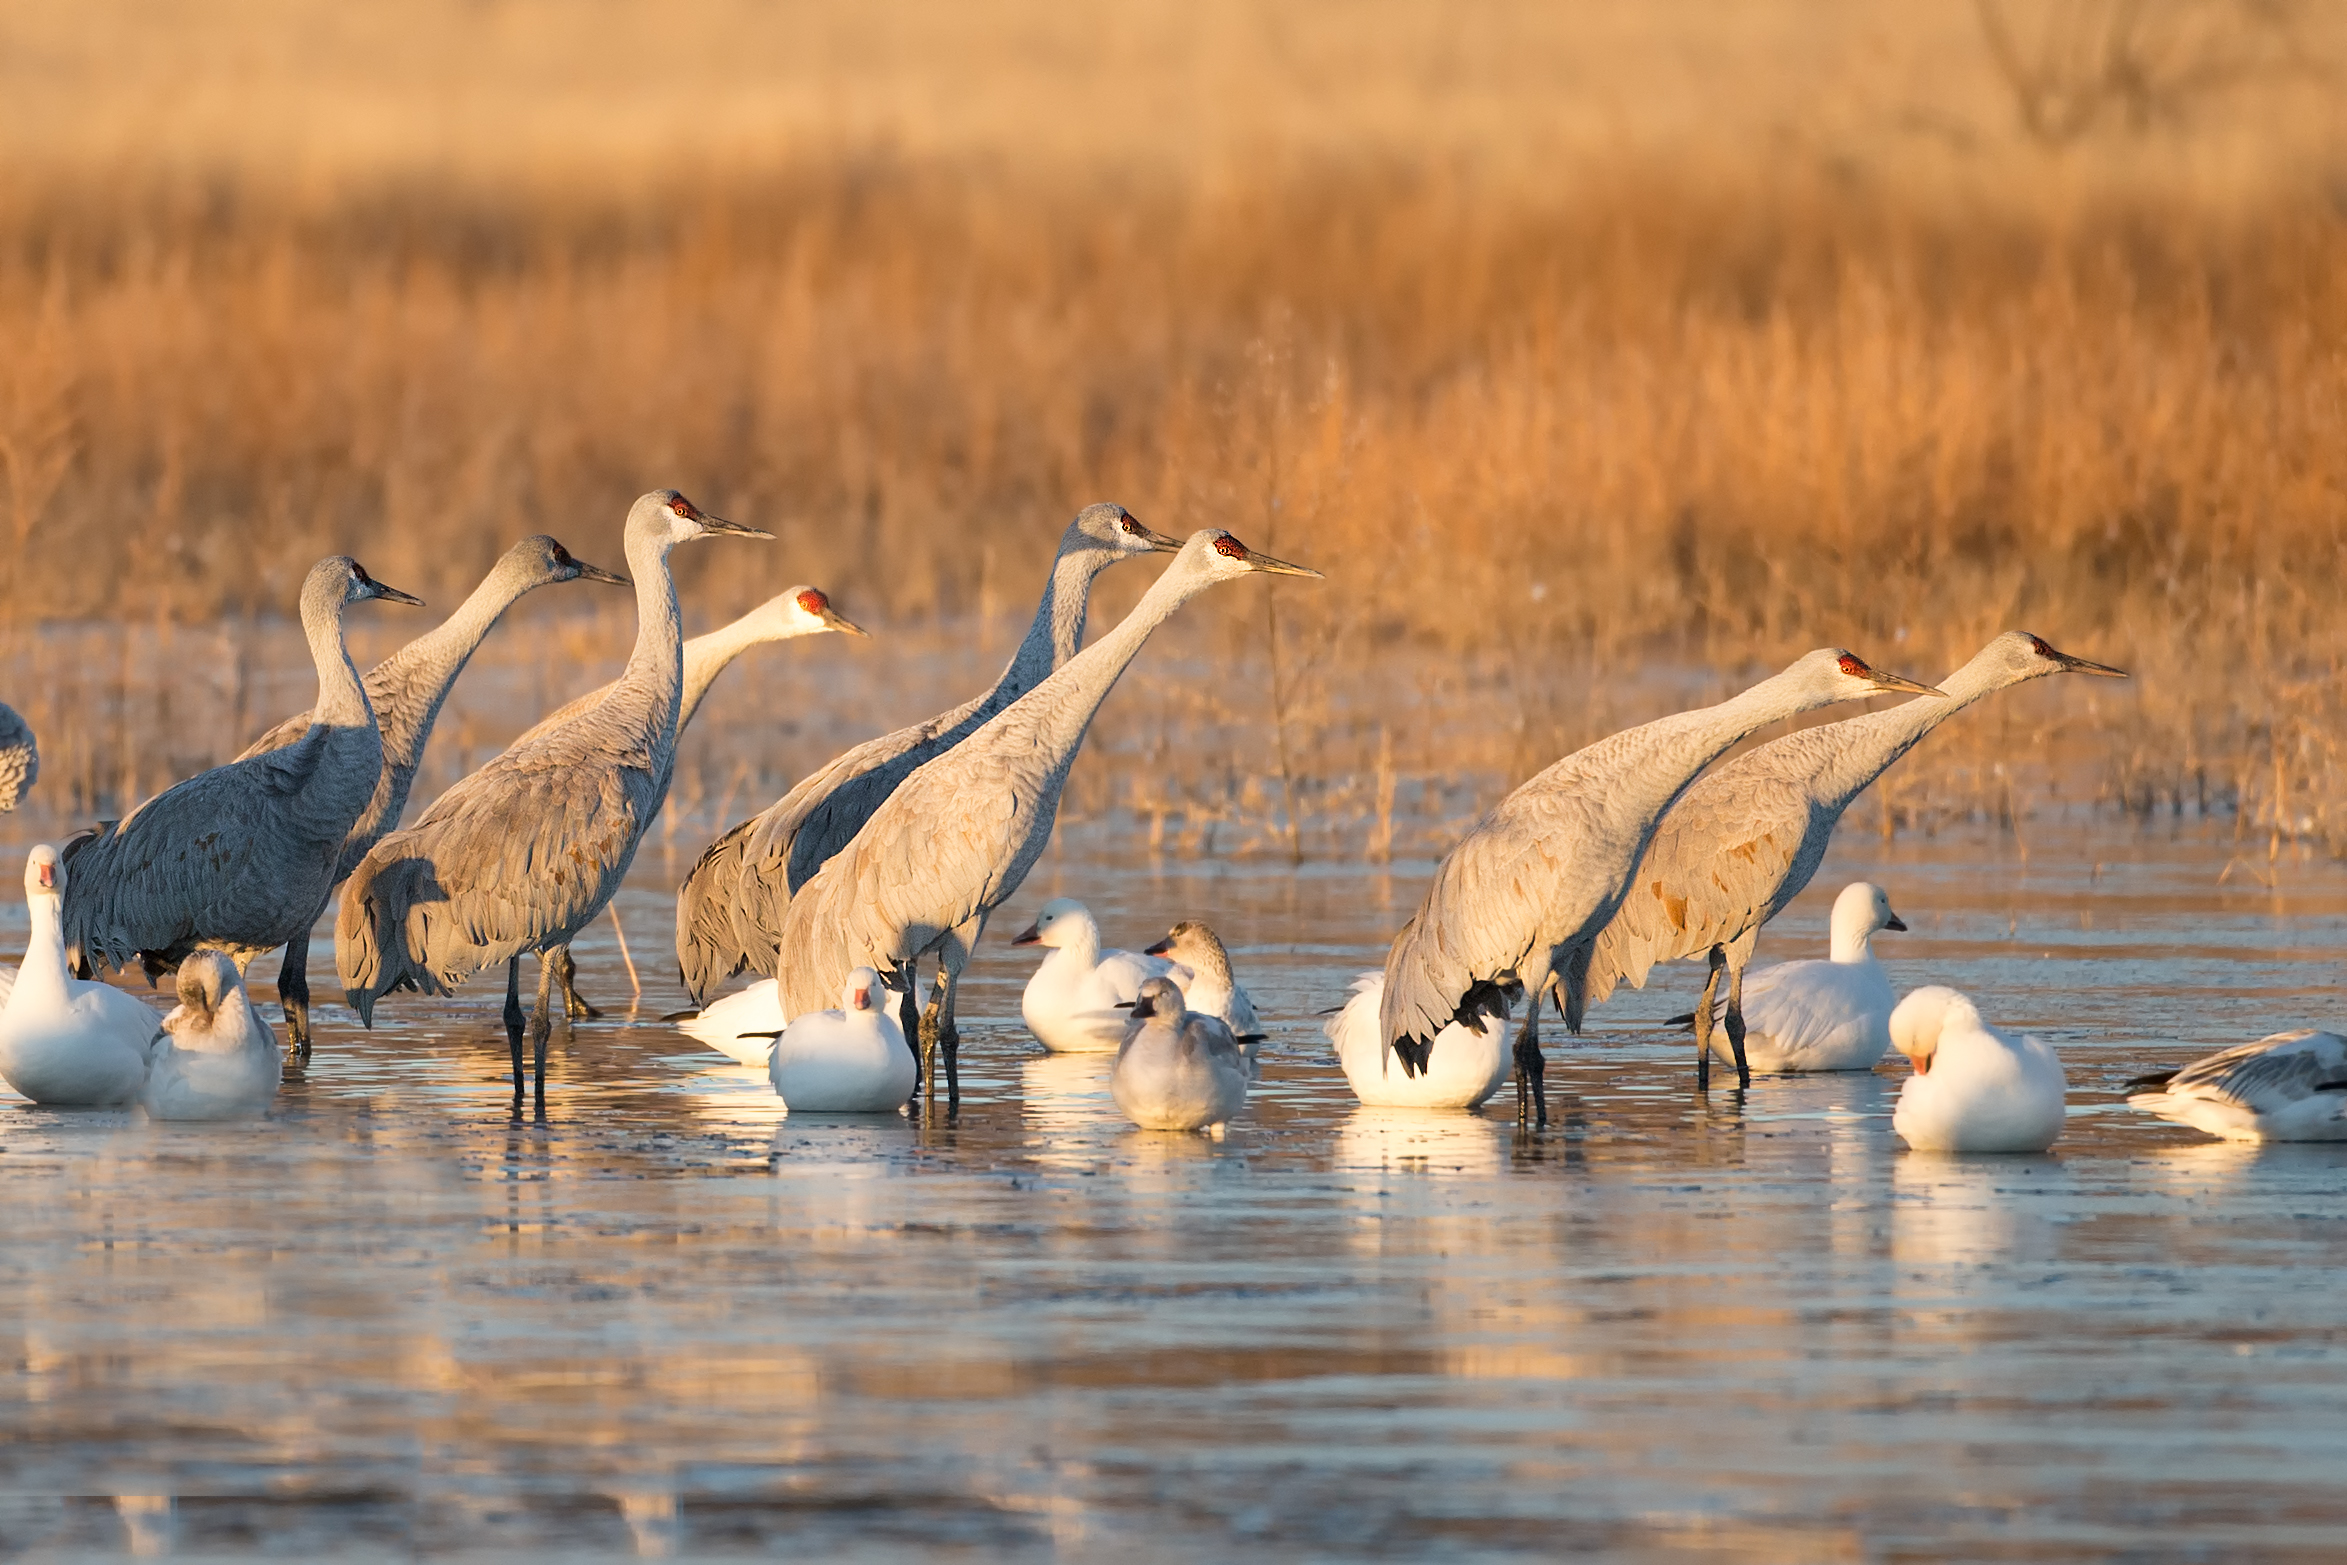 Sandhill cranes prepare for takeoff at the Bosque del Apache.